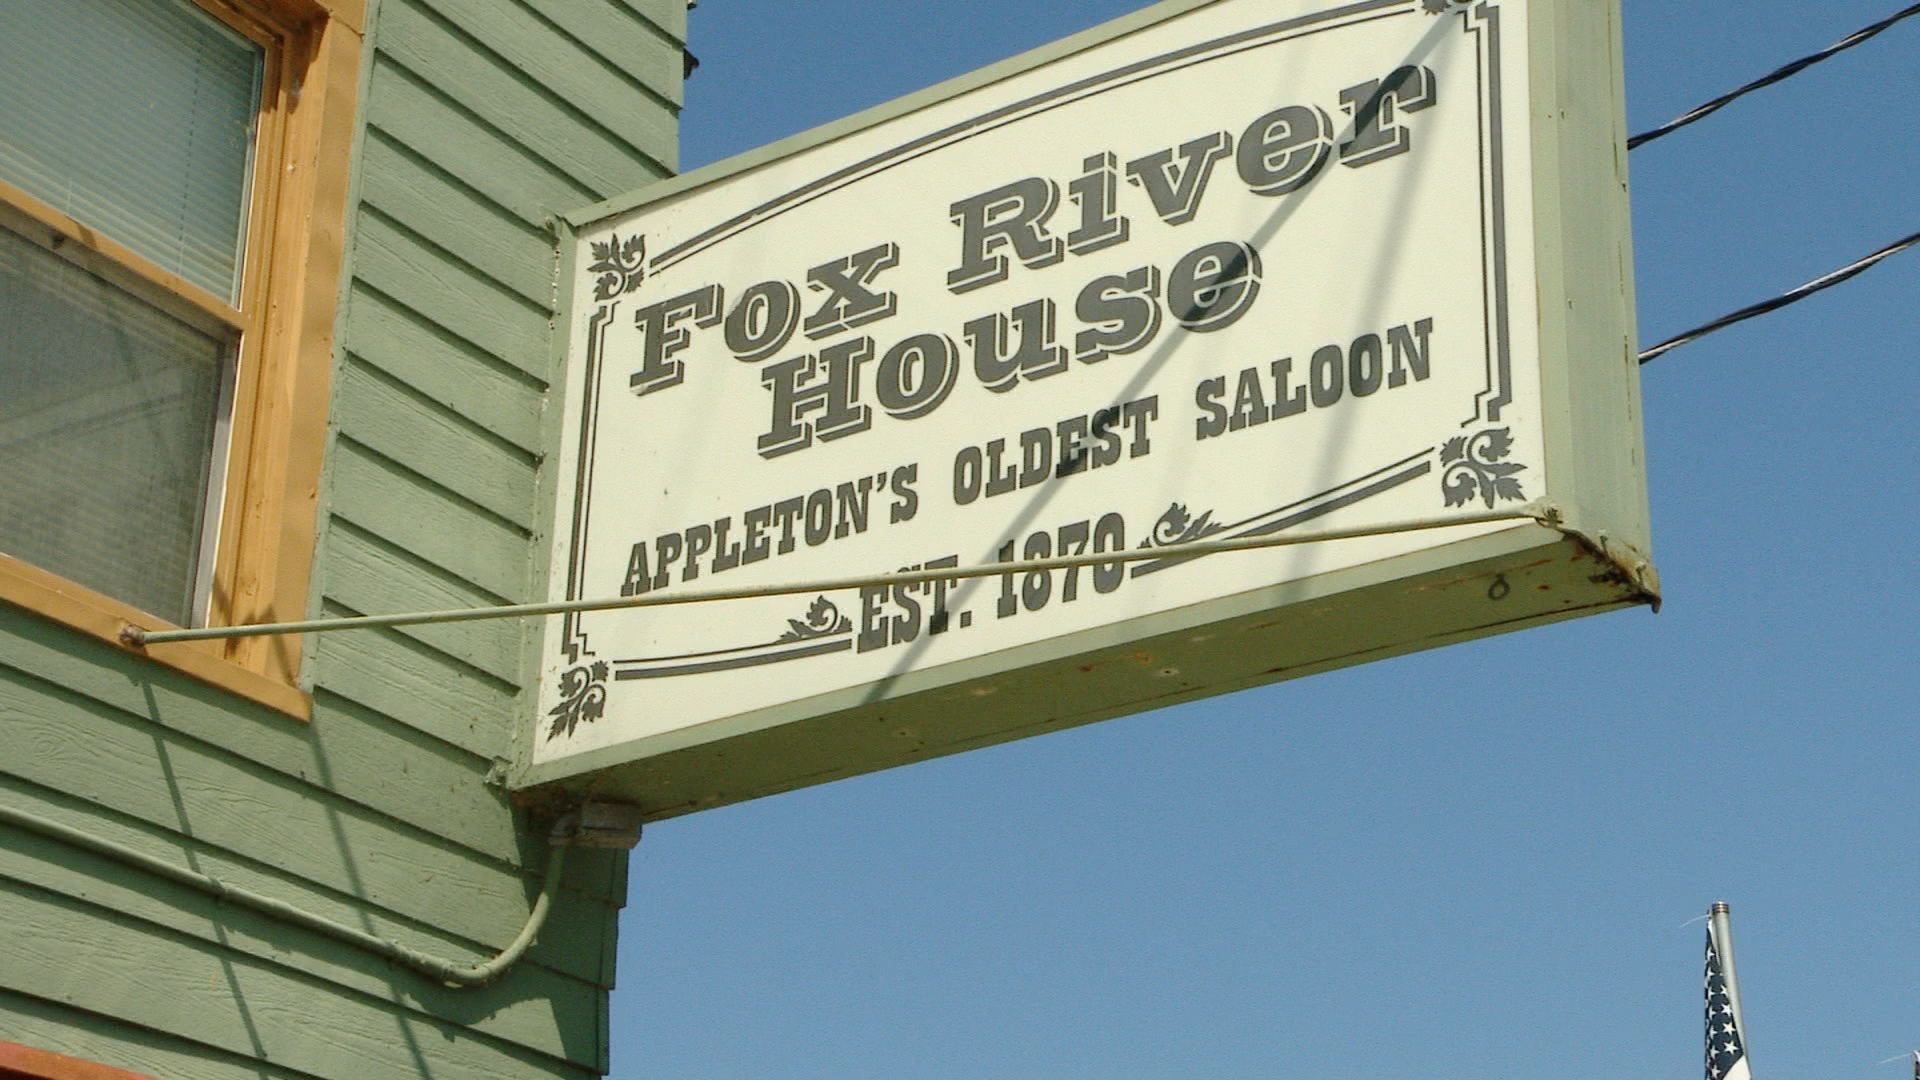 The Fox River House is a venue for Mile of Music. August 4, 2019. (WLUK/Chris Schattl)